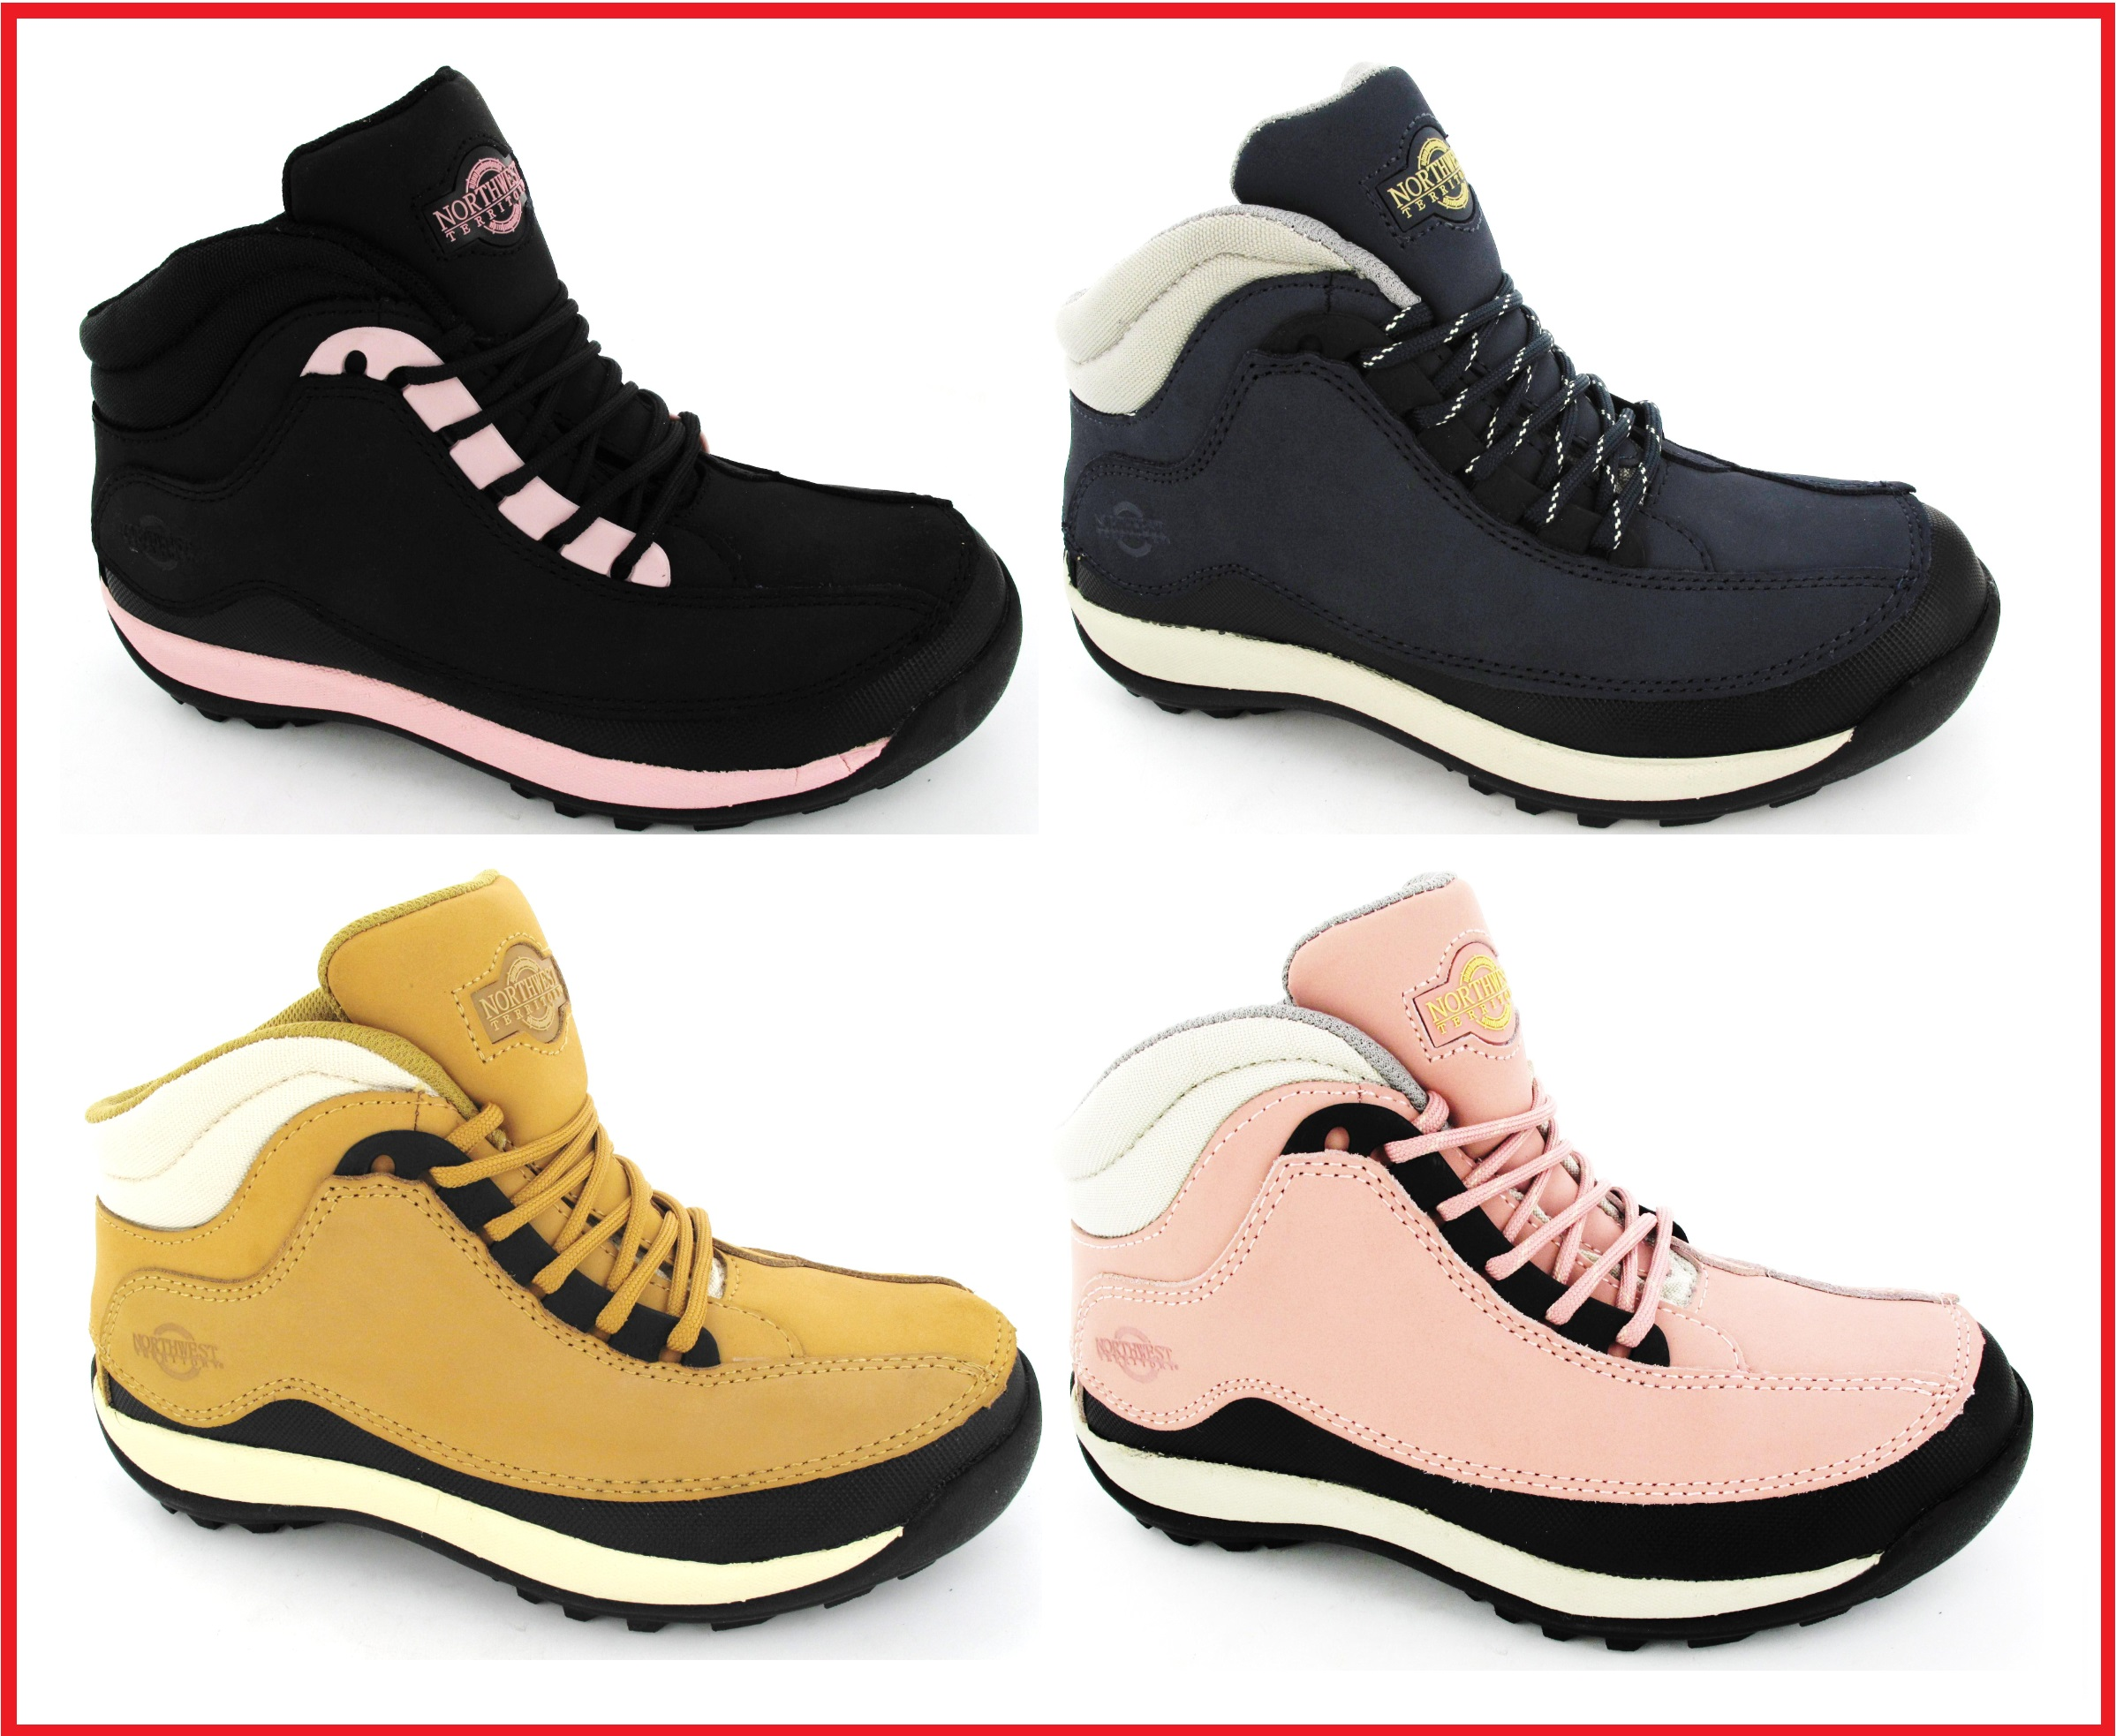 womens safety steel toe cap work hiking leather